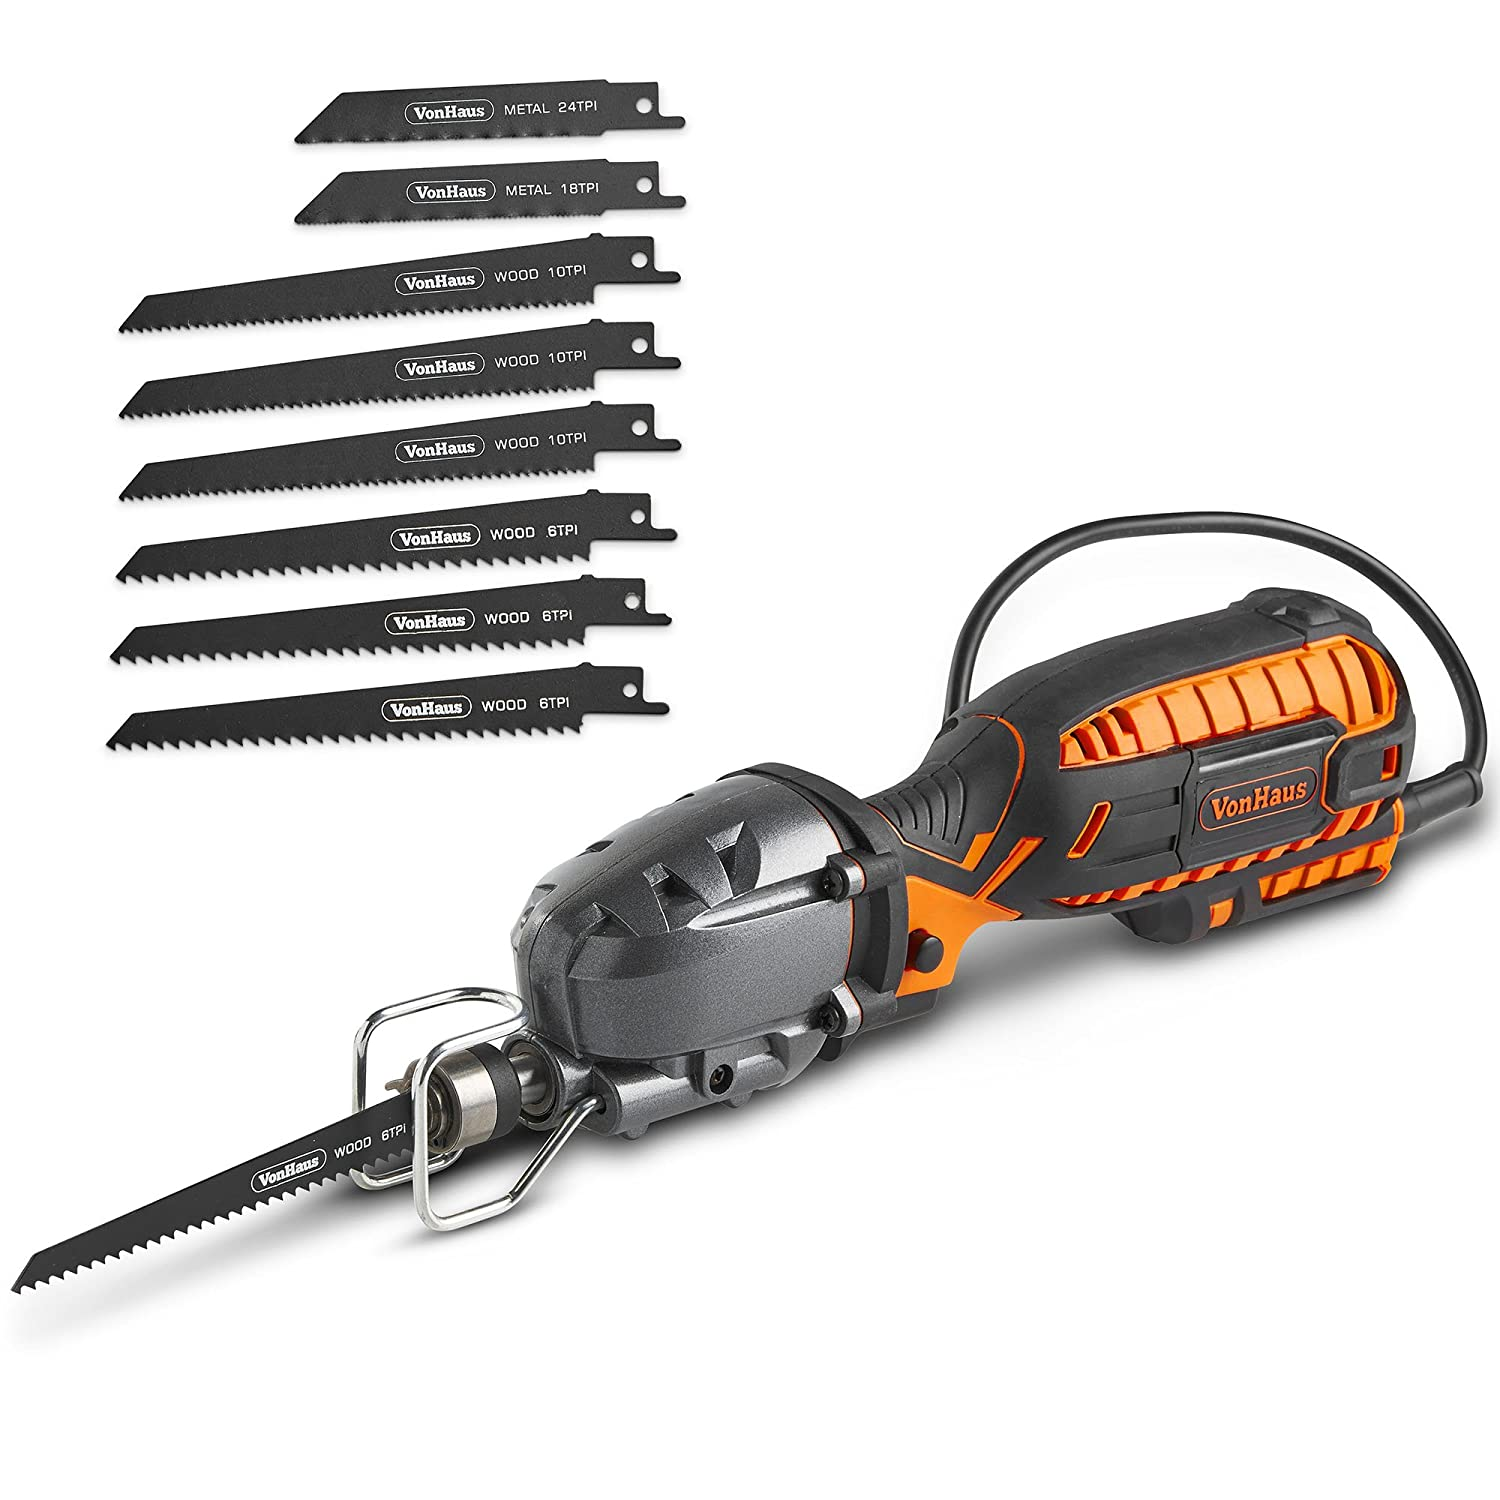 Vonhaus 5 Amp Compact Reciprocating Saw Kit Electric Saw With 8 Blades Stroke Length Max Cutting Capacity 4 3000spm And 16ft Cable For